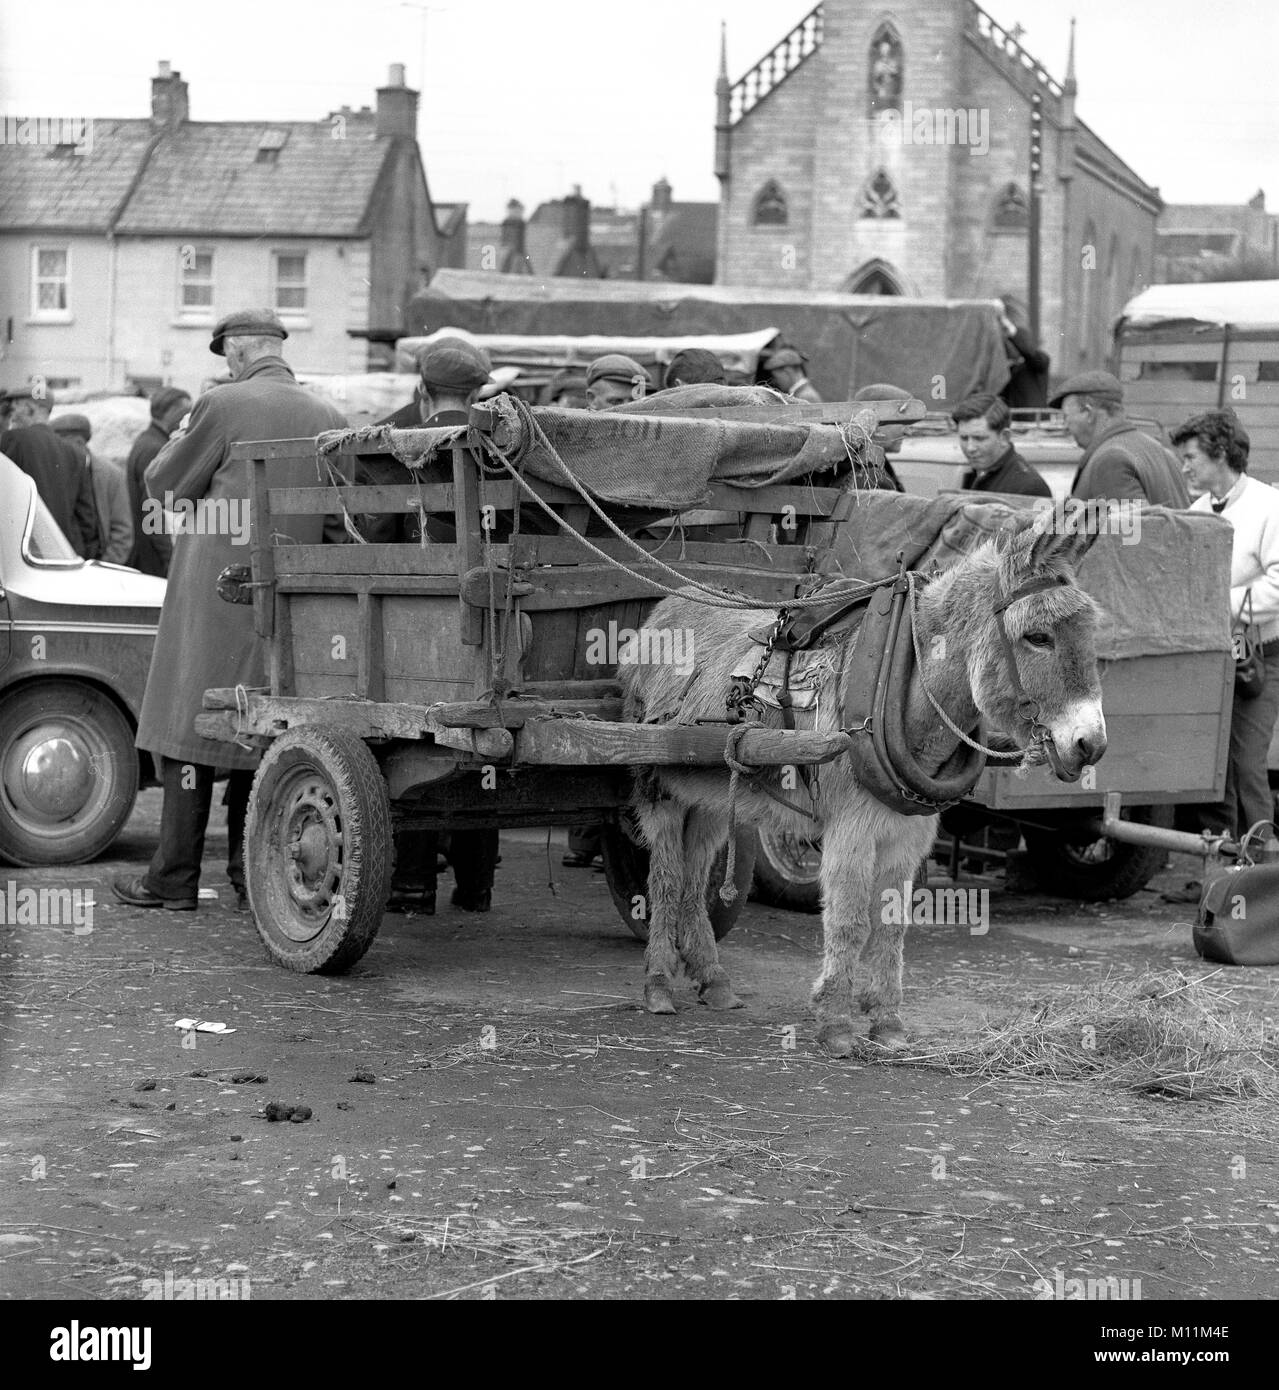 Donkey and cart at Galway Market in Ireland - Stock Image